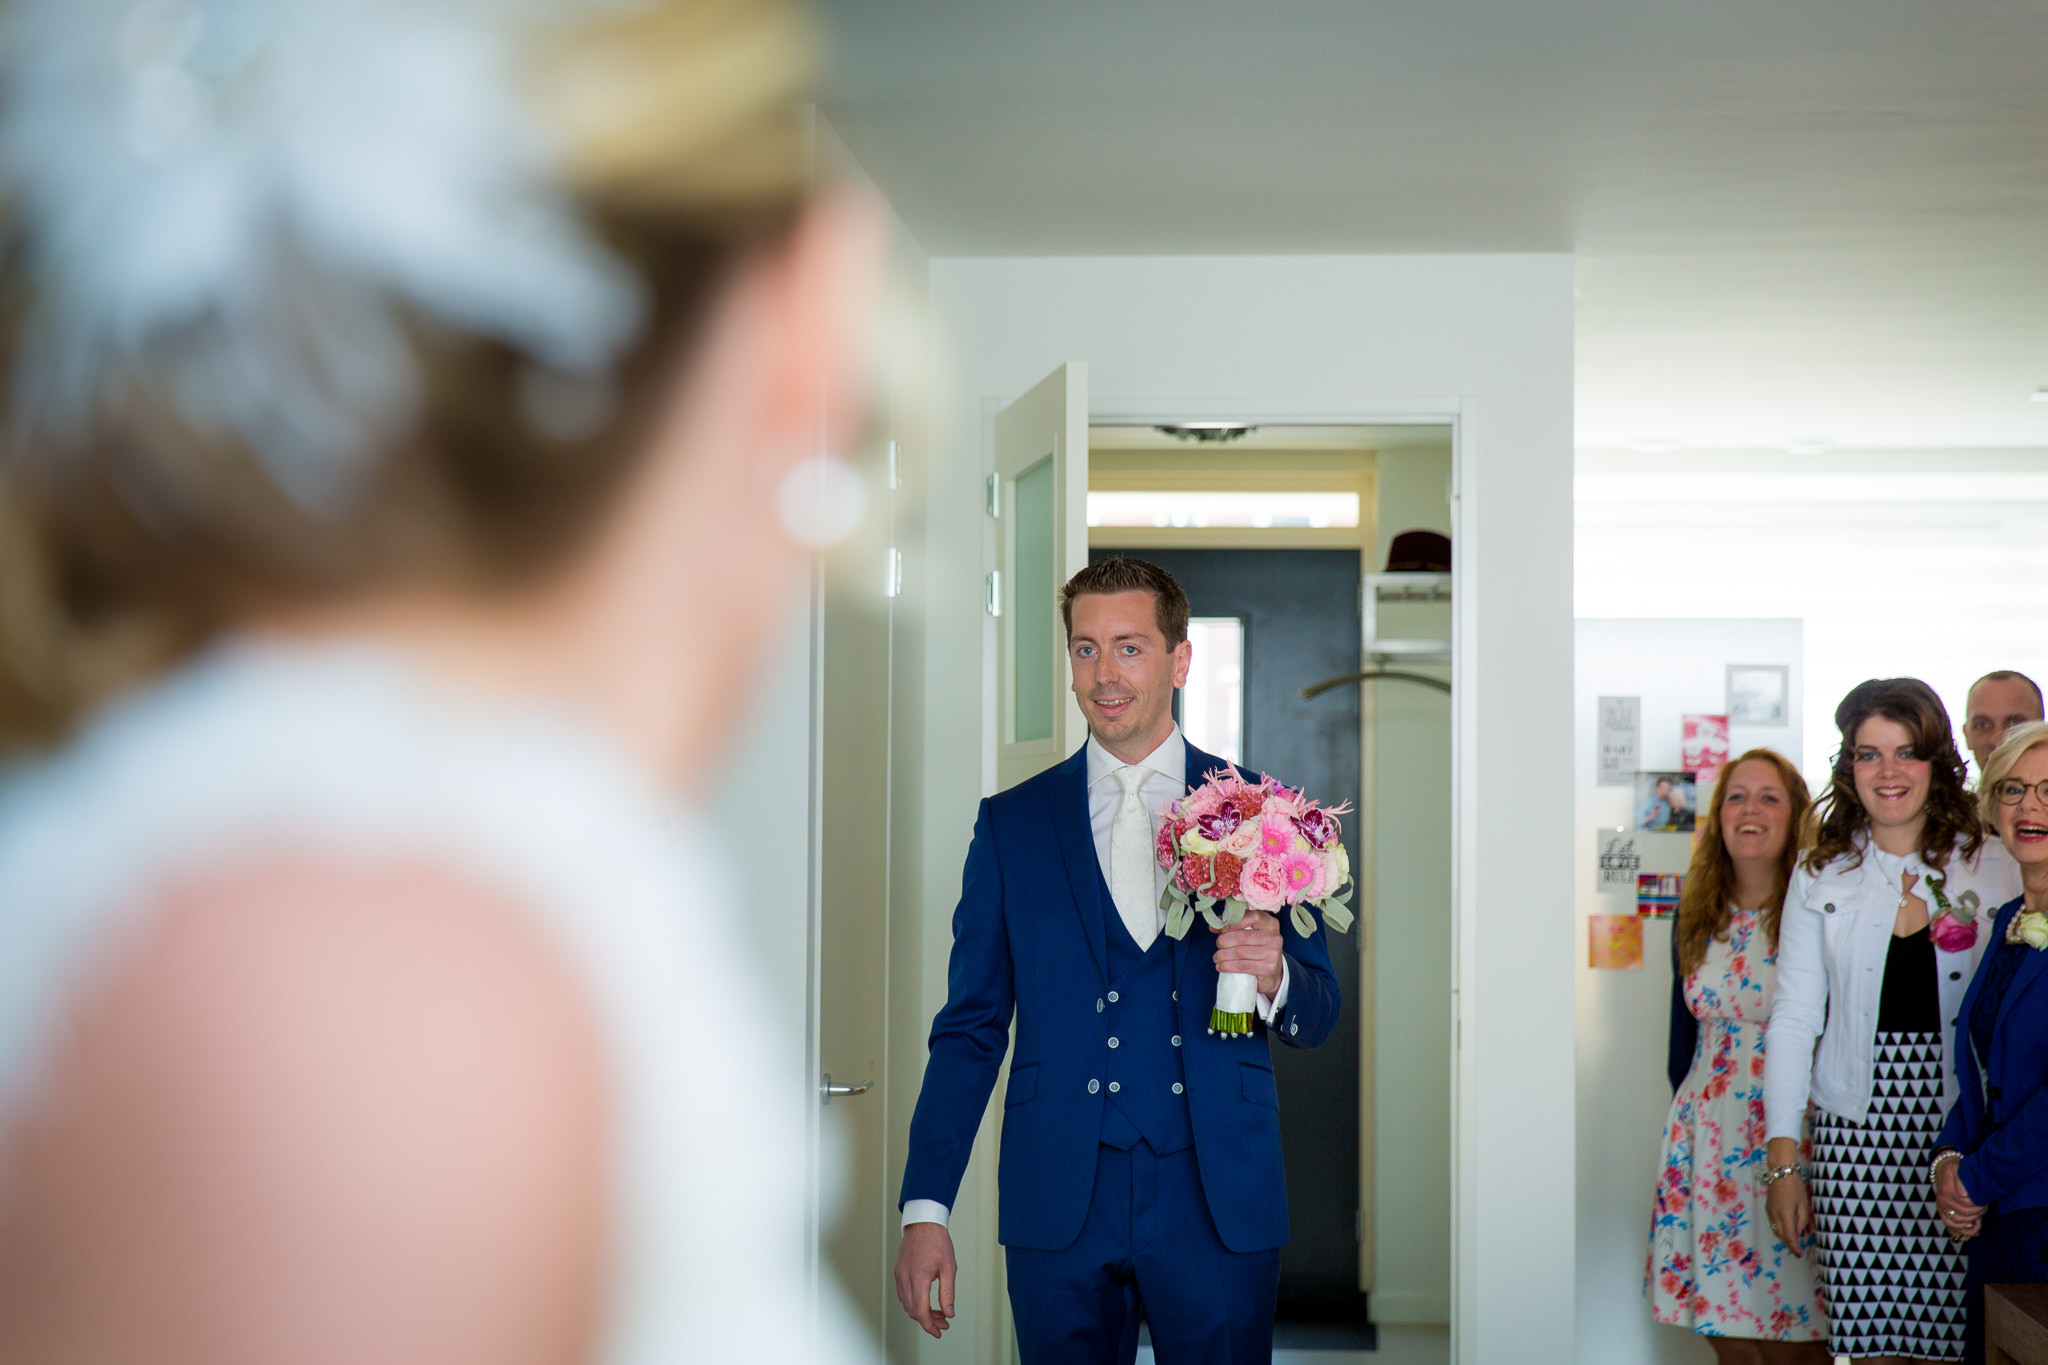 bride groom first look wedding photos Irish photographer david duignan photography dublin ireland 1120